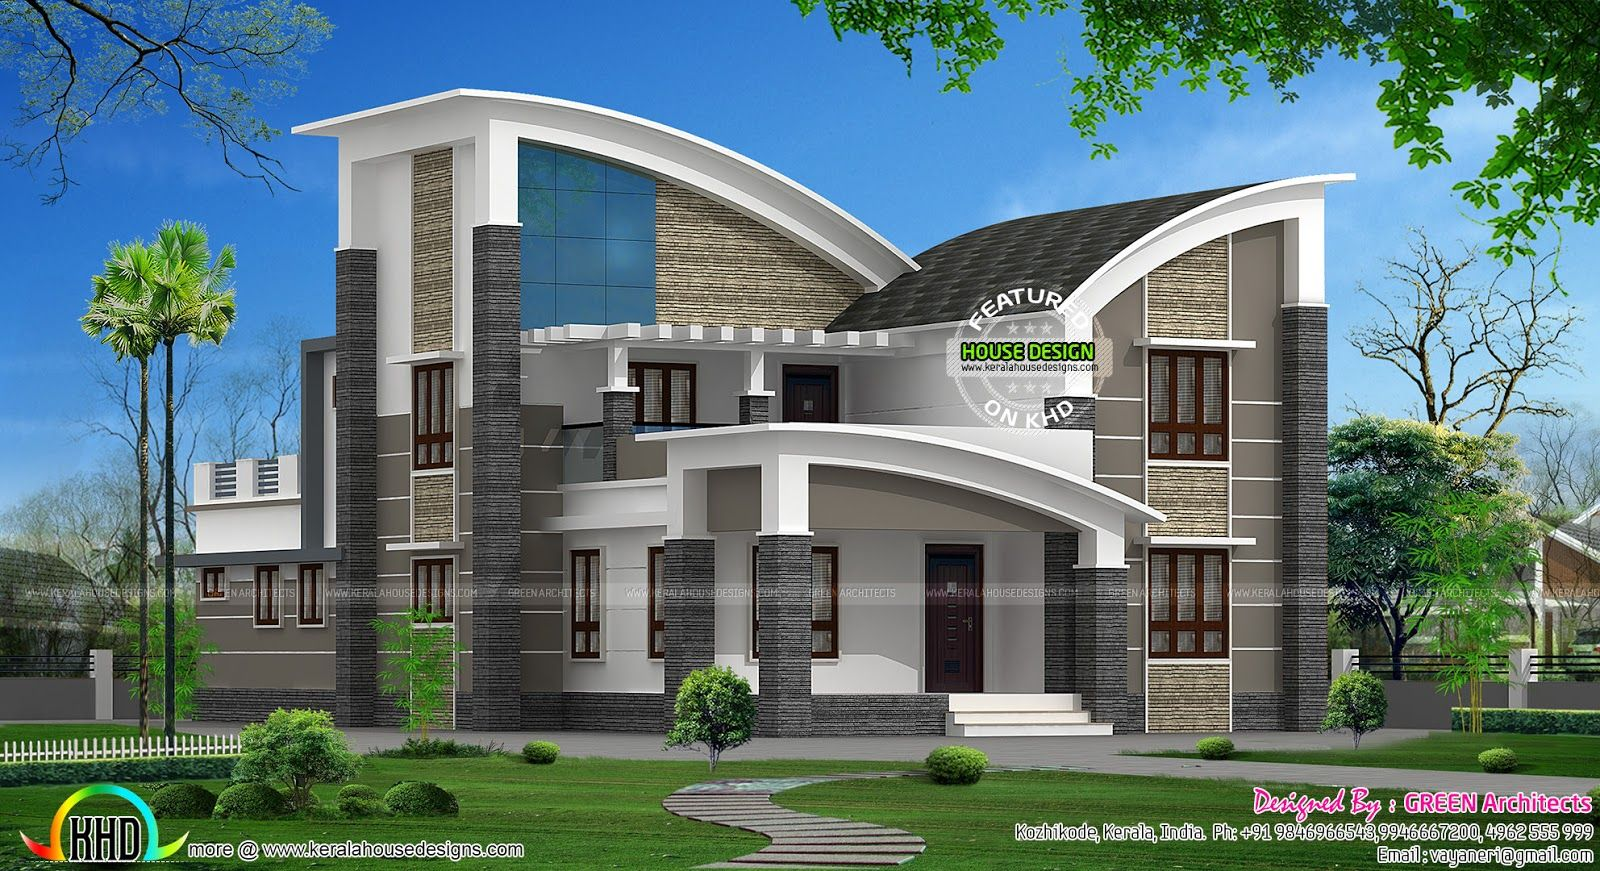 Modern style curved roof villa home inspiration for Modern house design 2016